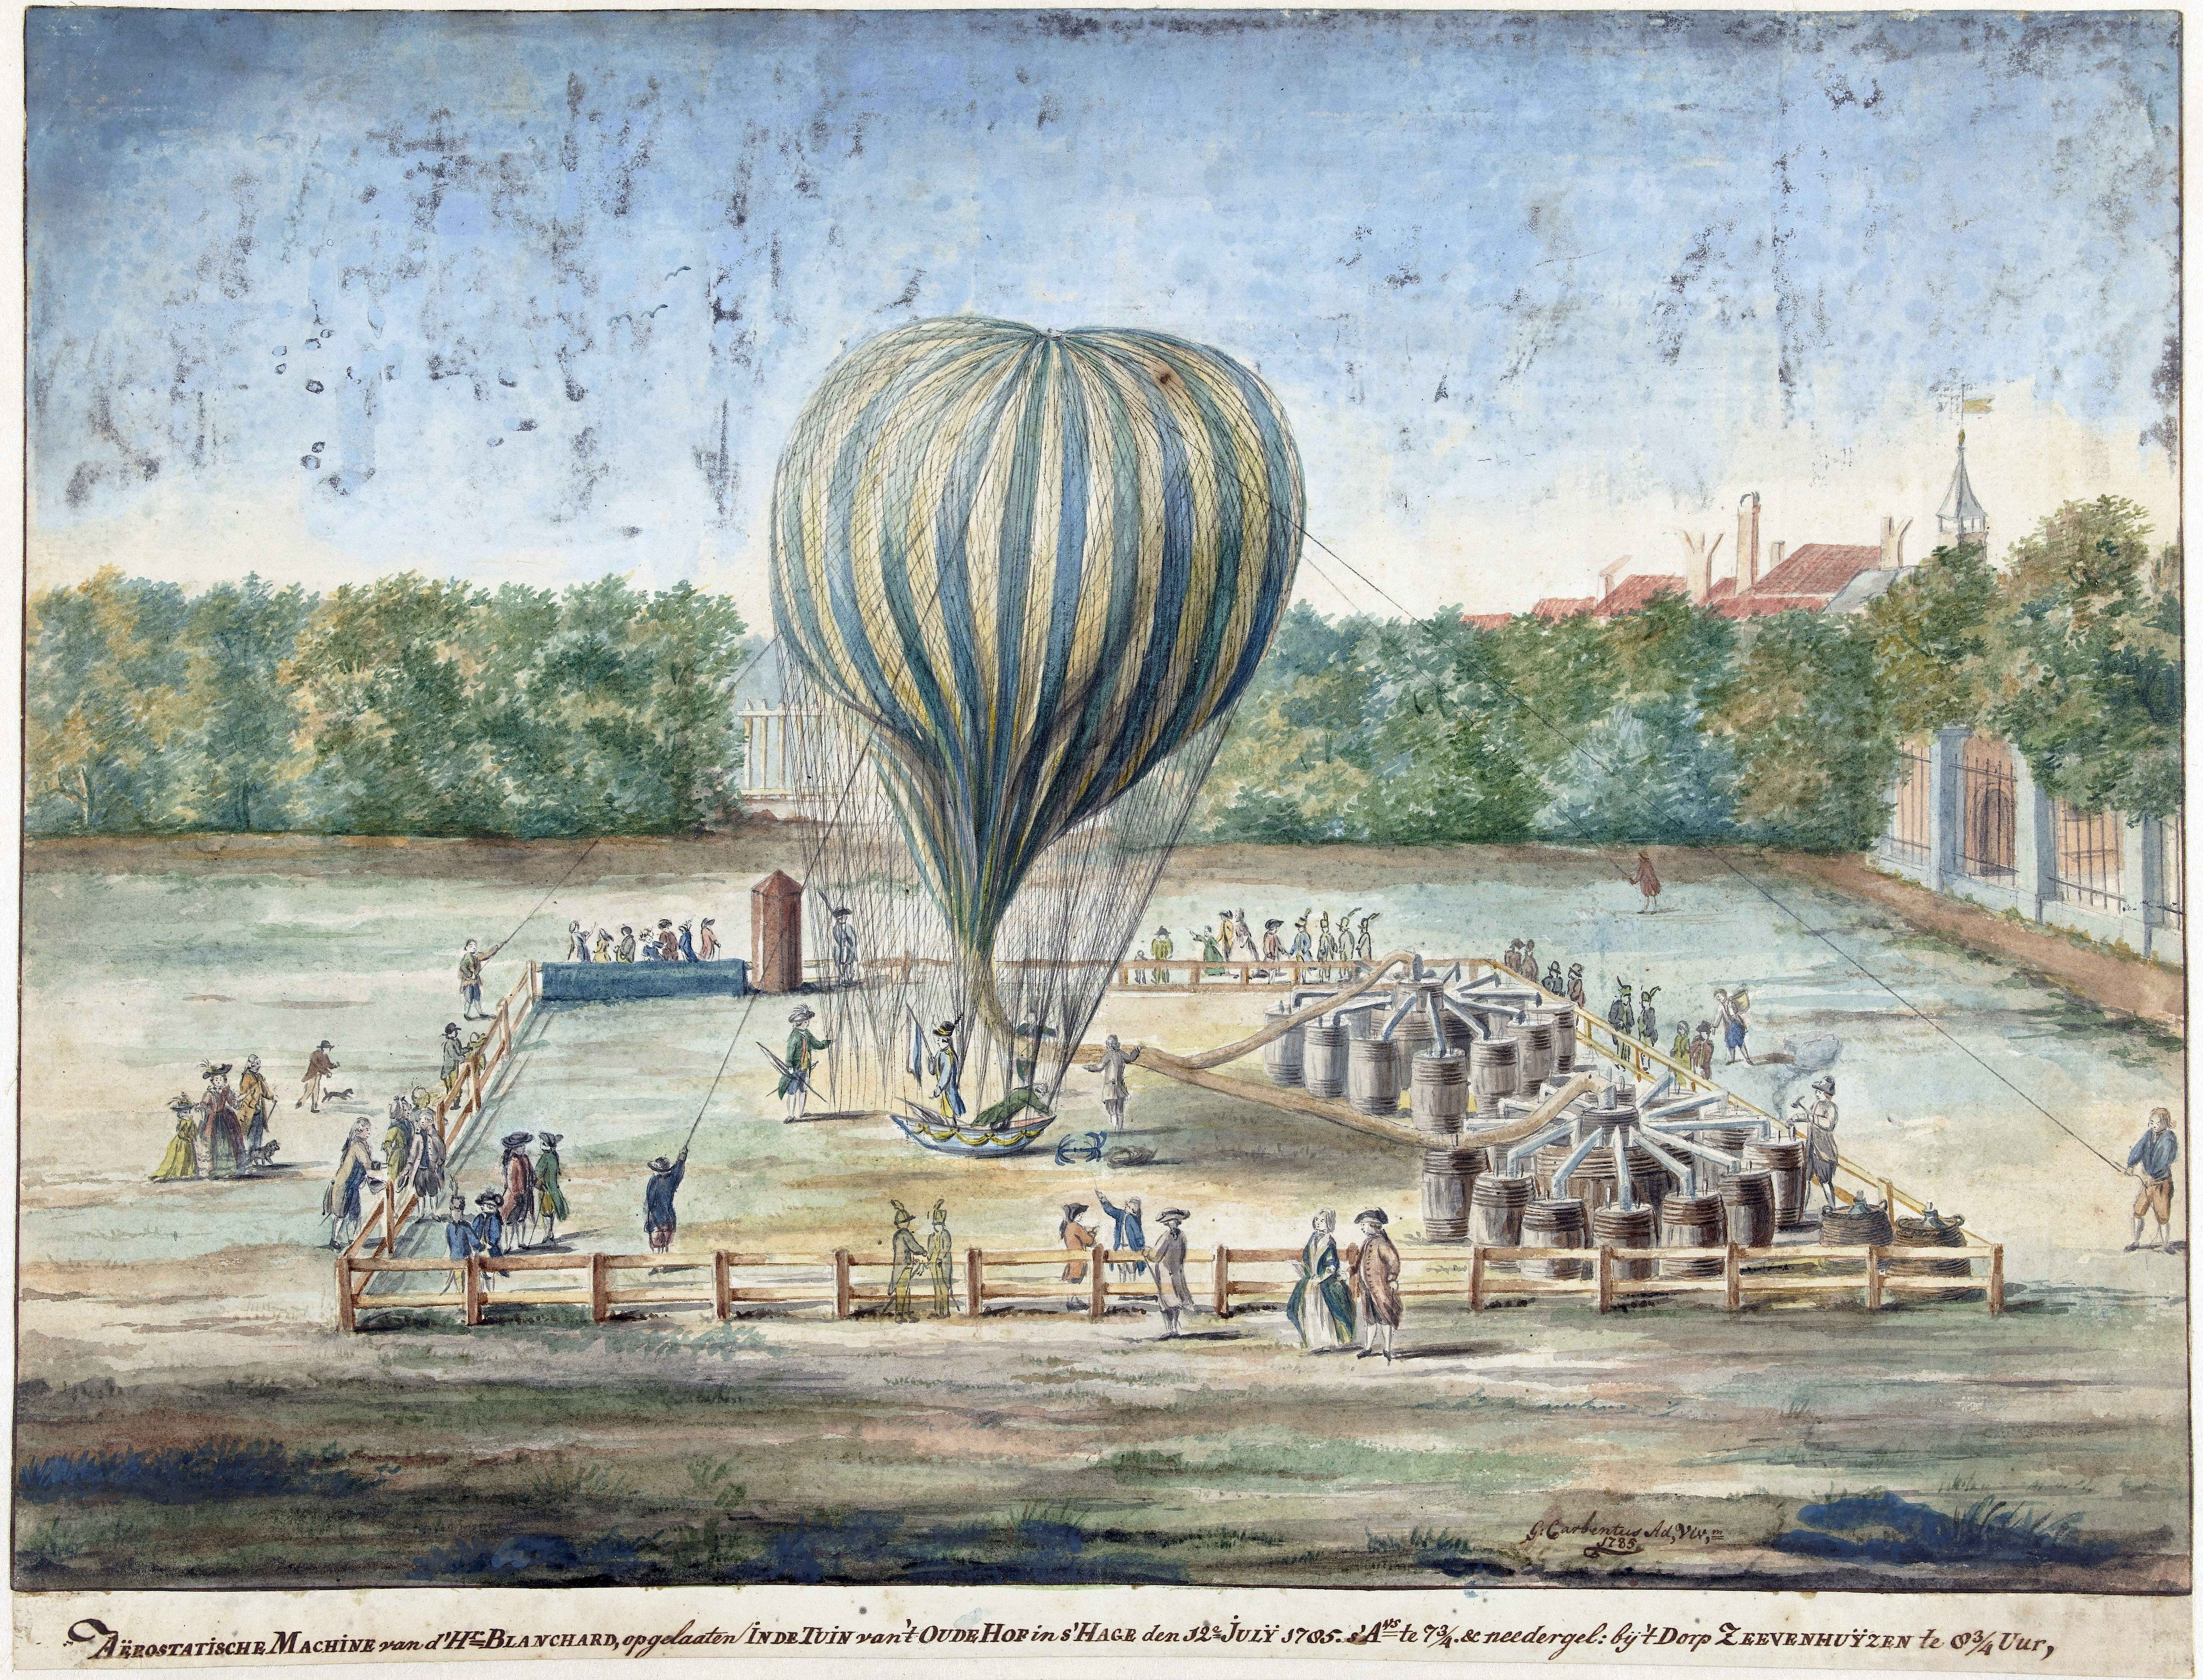 File:1785, Ascension of air-balloon at Noordeinde Palace, The Hague.